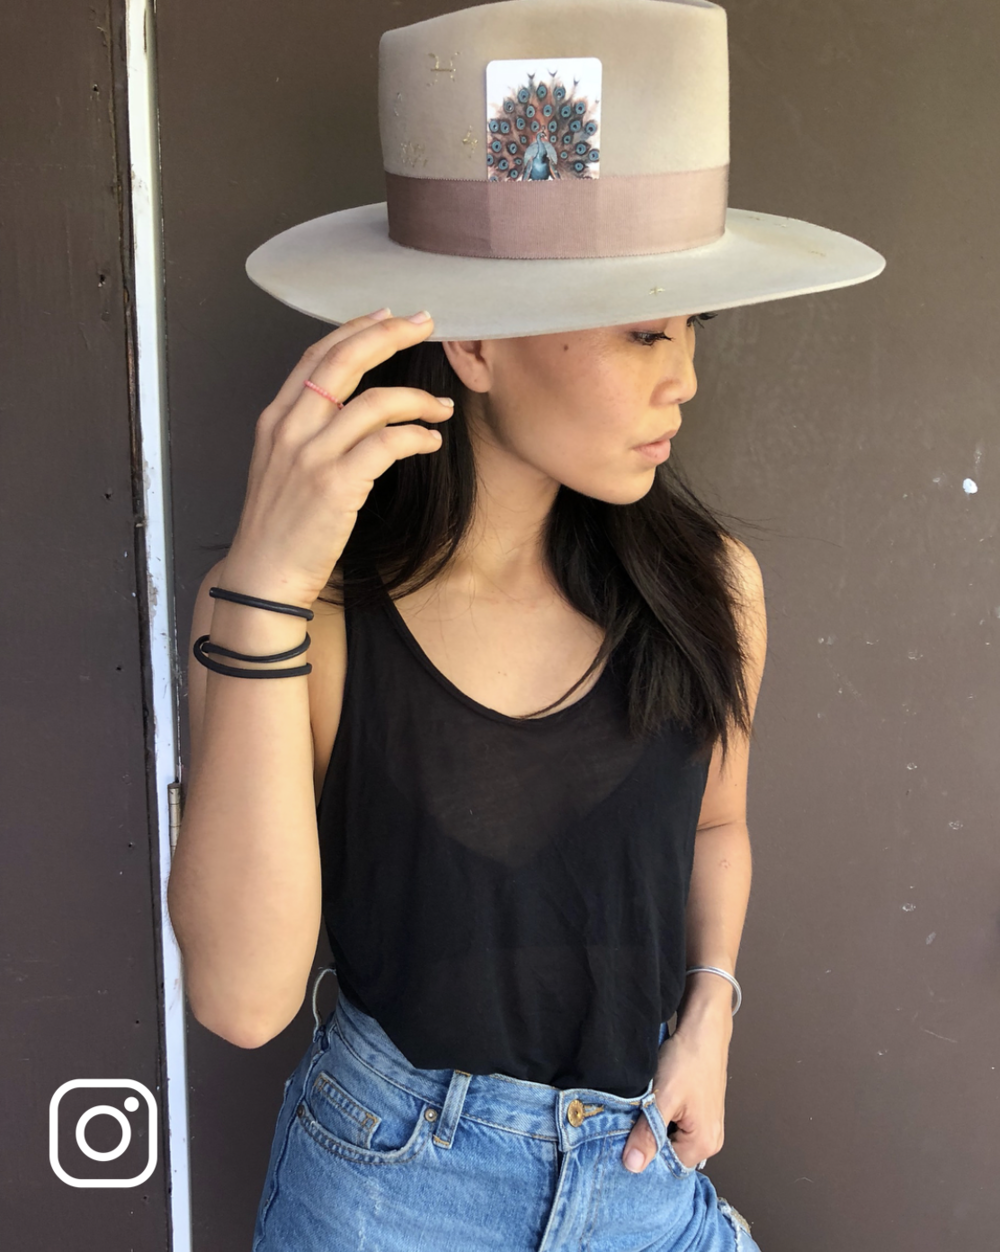 """Alberto Hernandez is the only hatmaker you need to know. Thank you for my custom hat  @meshikahats !⚡️⚡️⚡️⚡️ the details mean so much to me..."" @thealiciahannah"